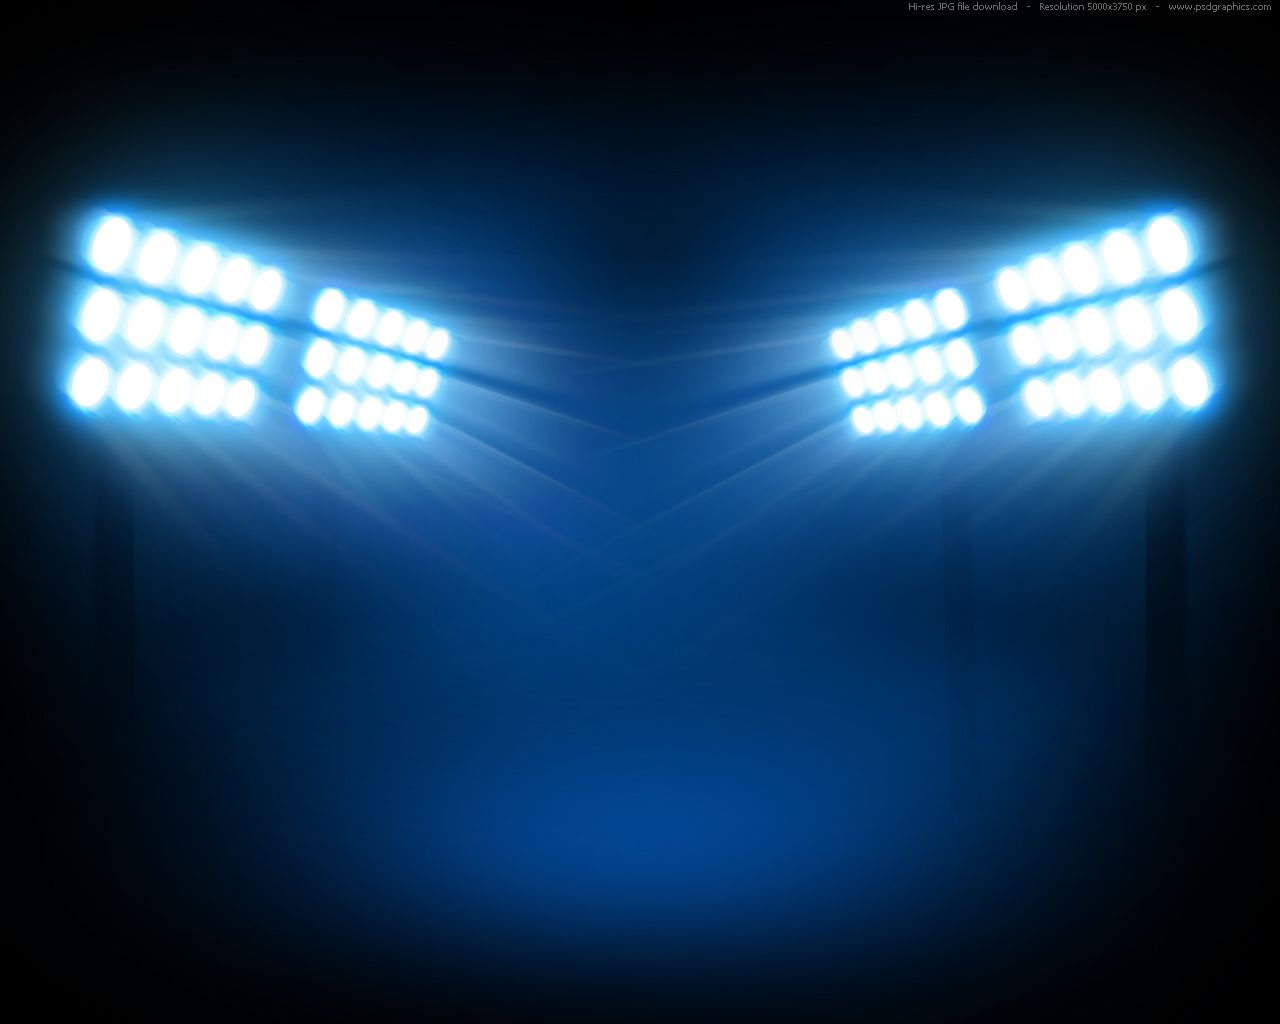 Backgrounds Stadium Floodlights Backgrounds Psdgraphics Stadium Lighting Football Background Stadium Wallpaper